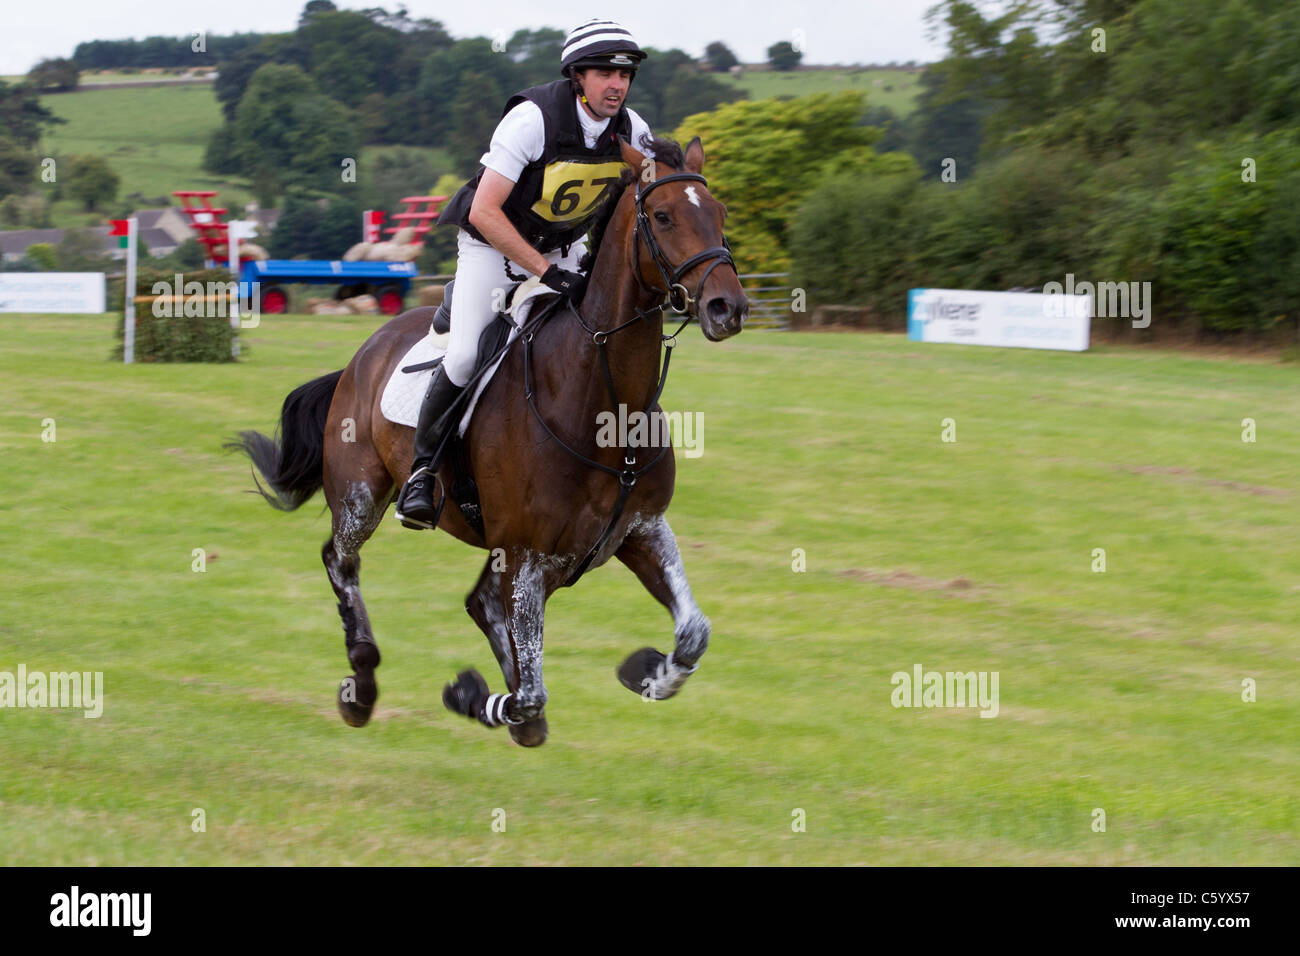 A horse in the suspension phase of the gallop on the cross-country course at the British Festival of Eventing, Gatcombe - Stock Image